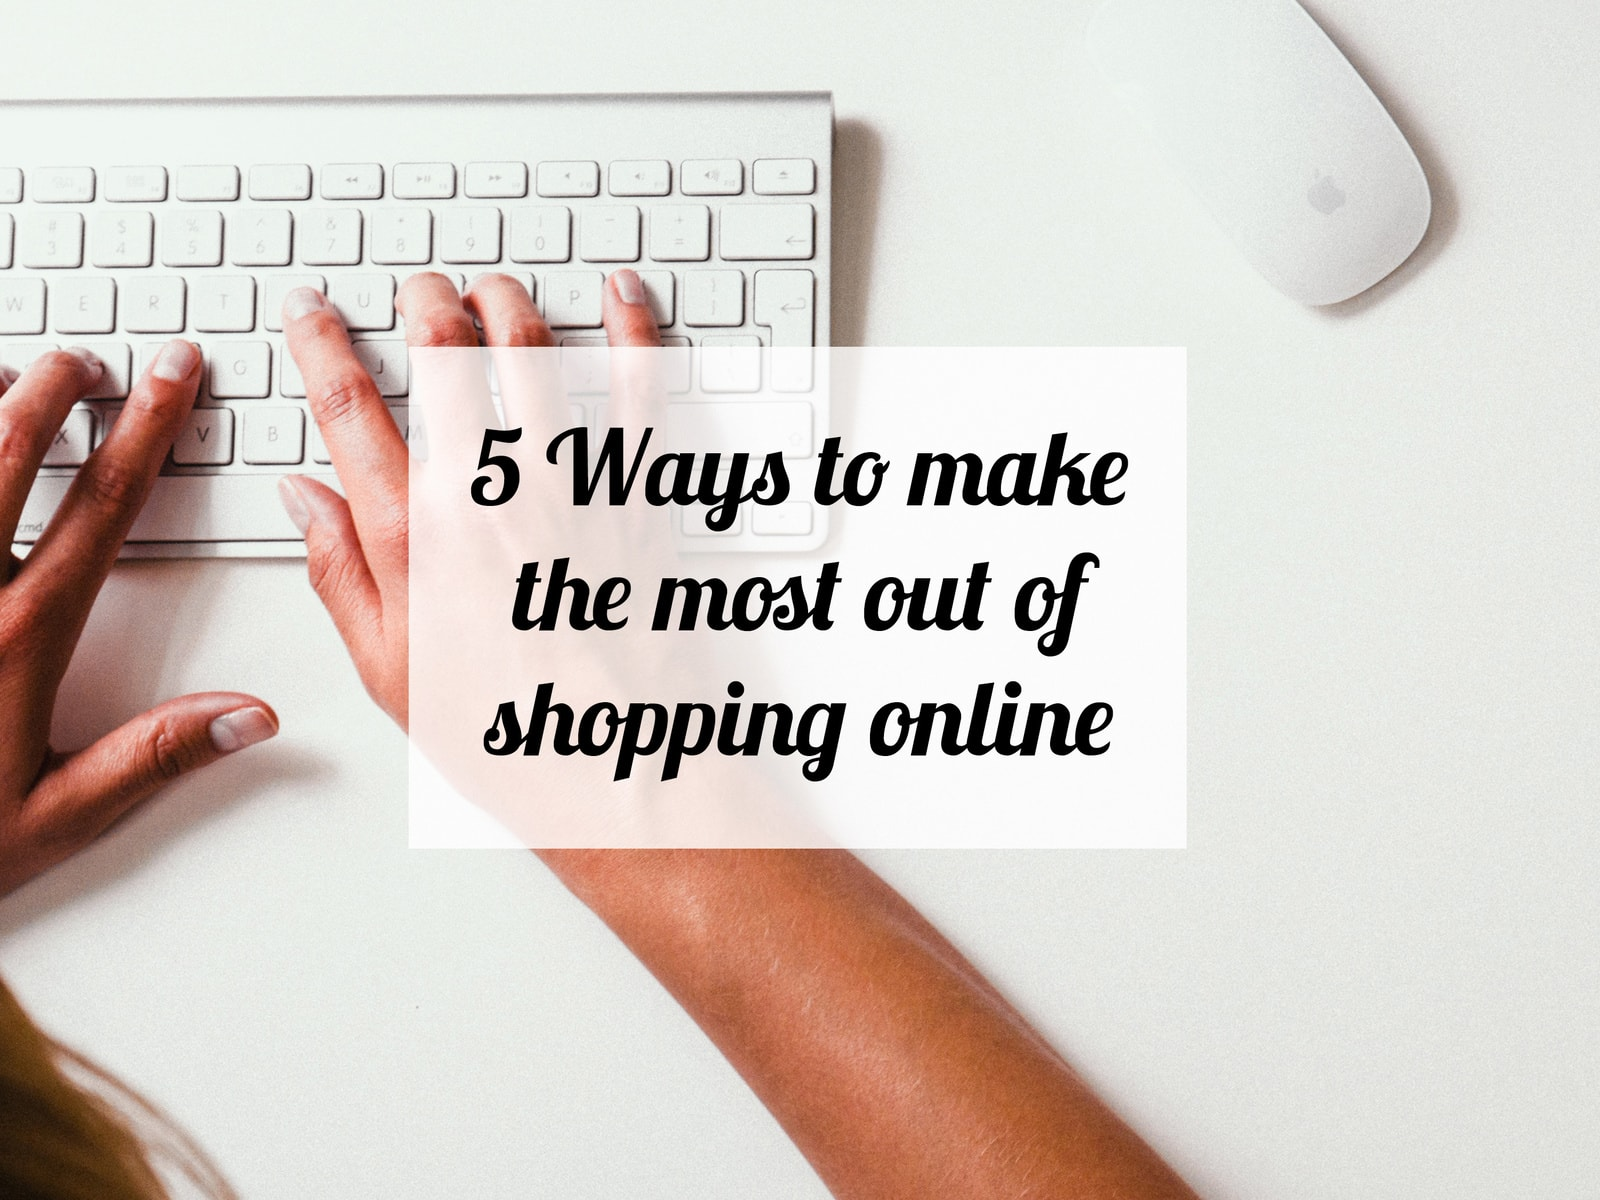 5 Ways to make the most out of shopping online